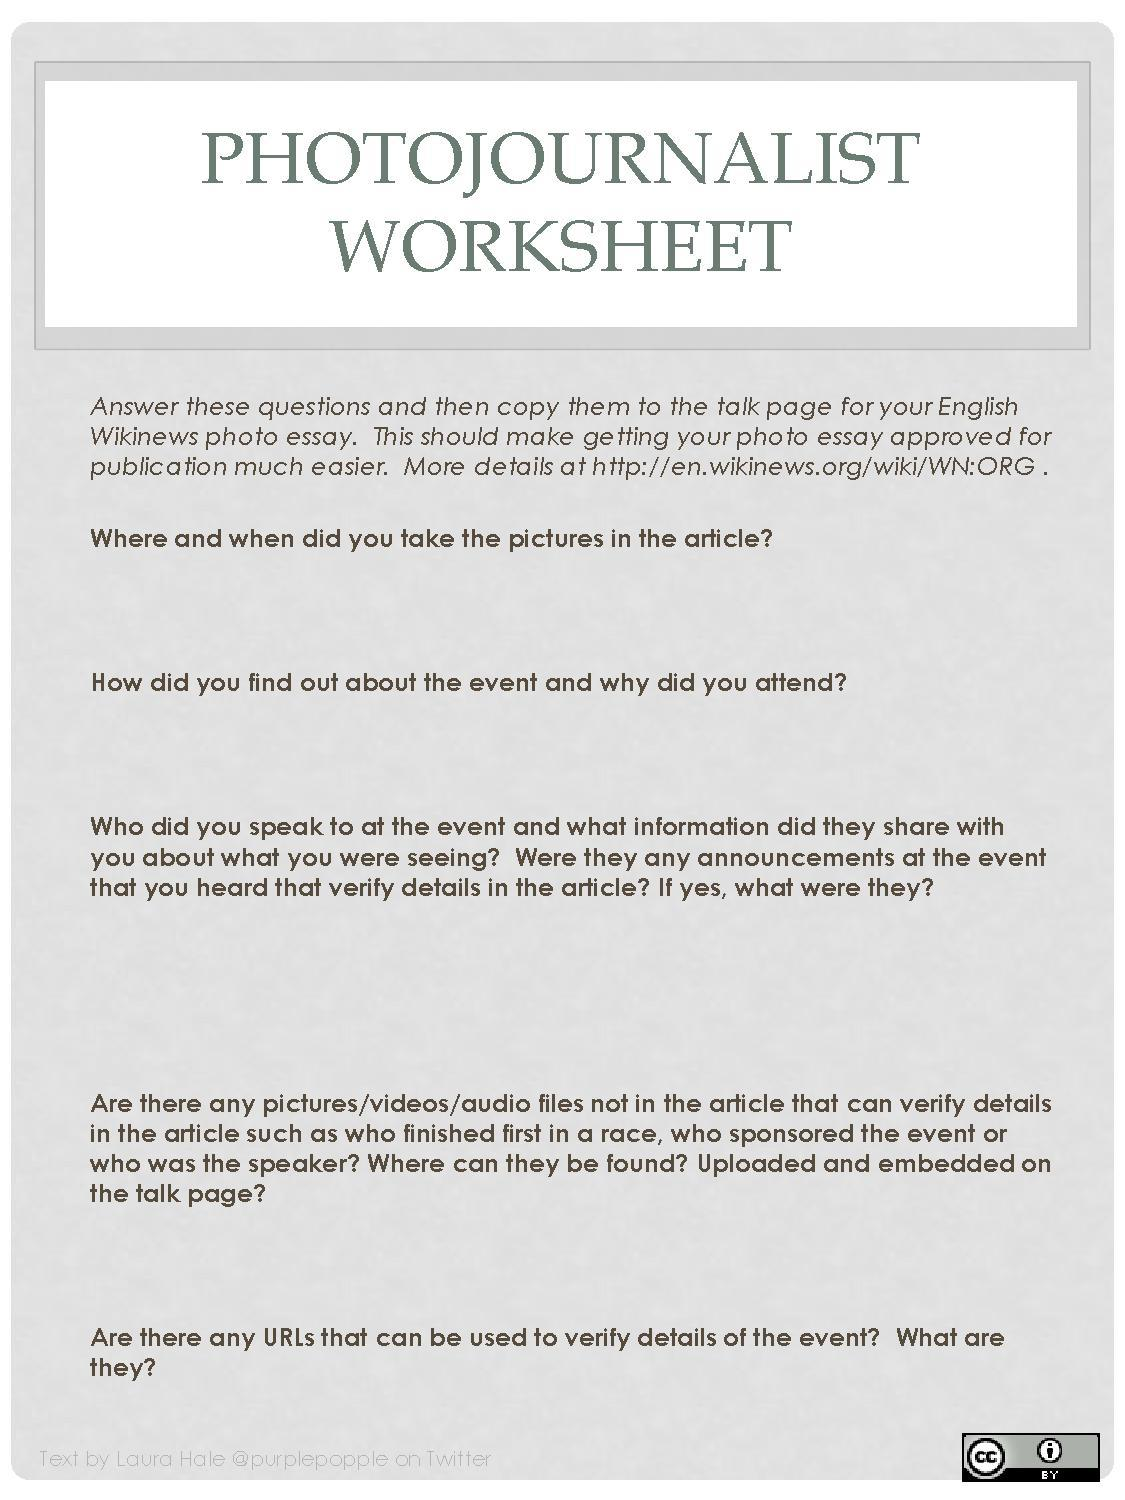 File Photojournalist Worksheet